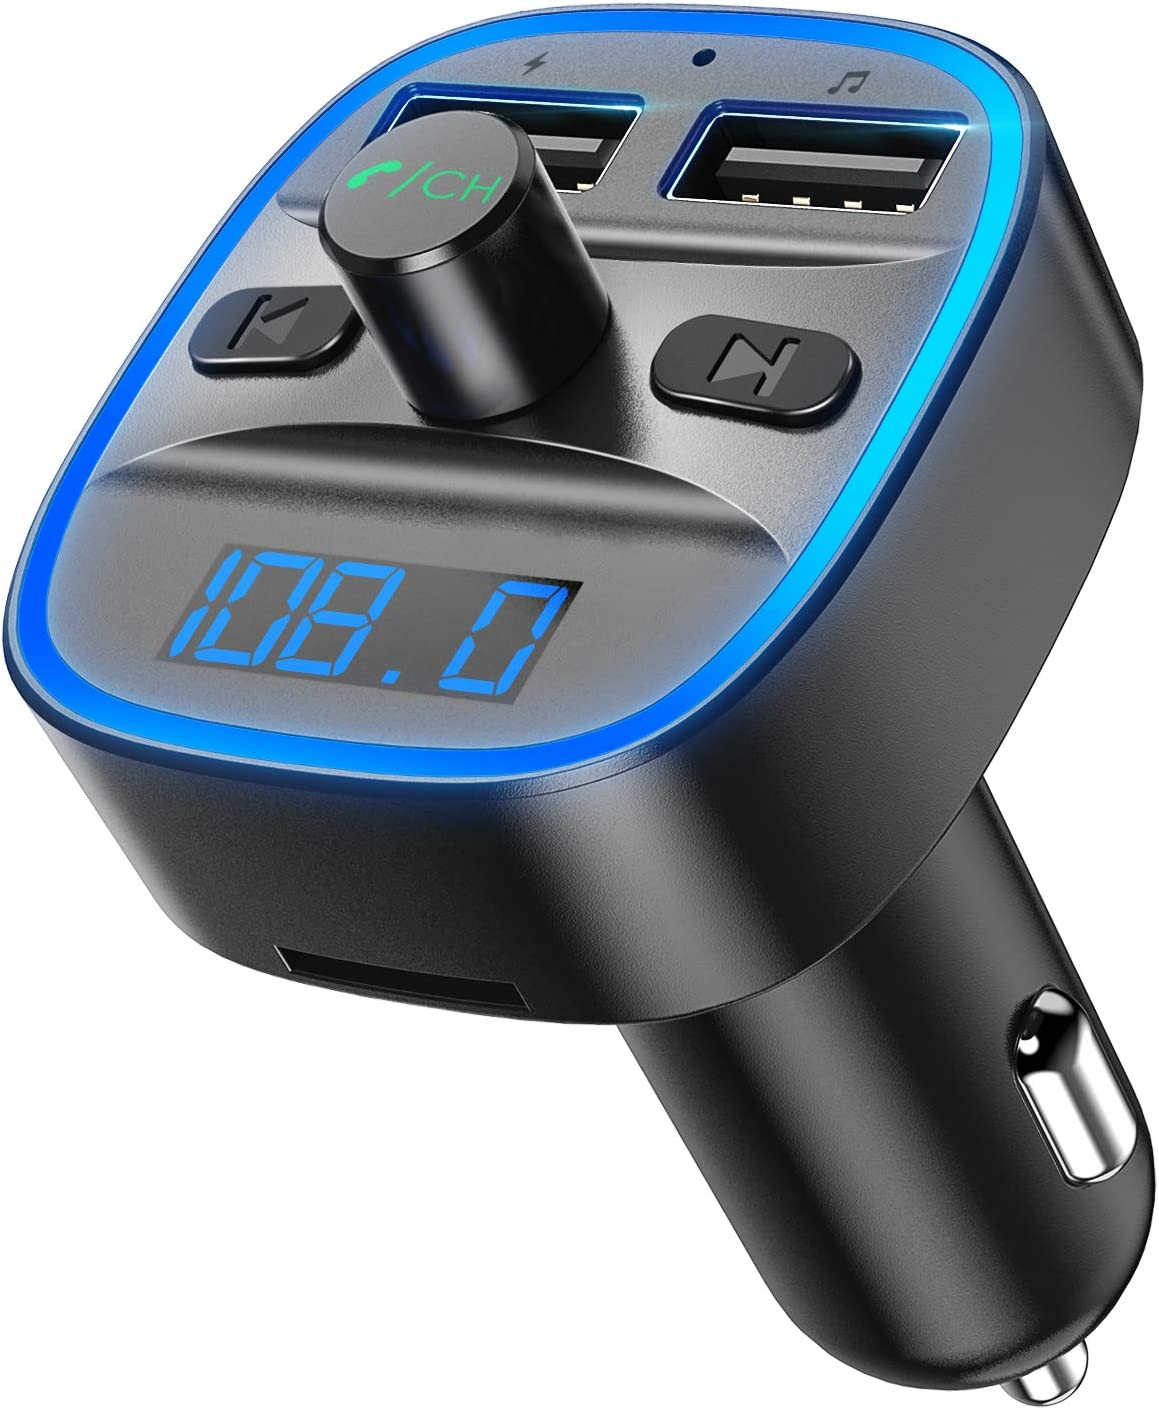 (NEW) Bluetooth FM Transmitter for Car, Wireless in-Car Radio Transmitter Adapter Car Kit, Music Player Supports TF Card, USB Disk, Hands-free Calling Dual USB Ports